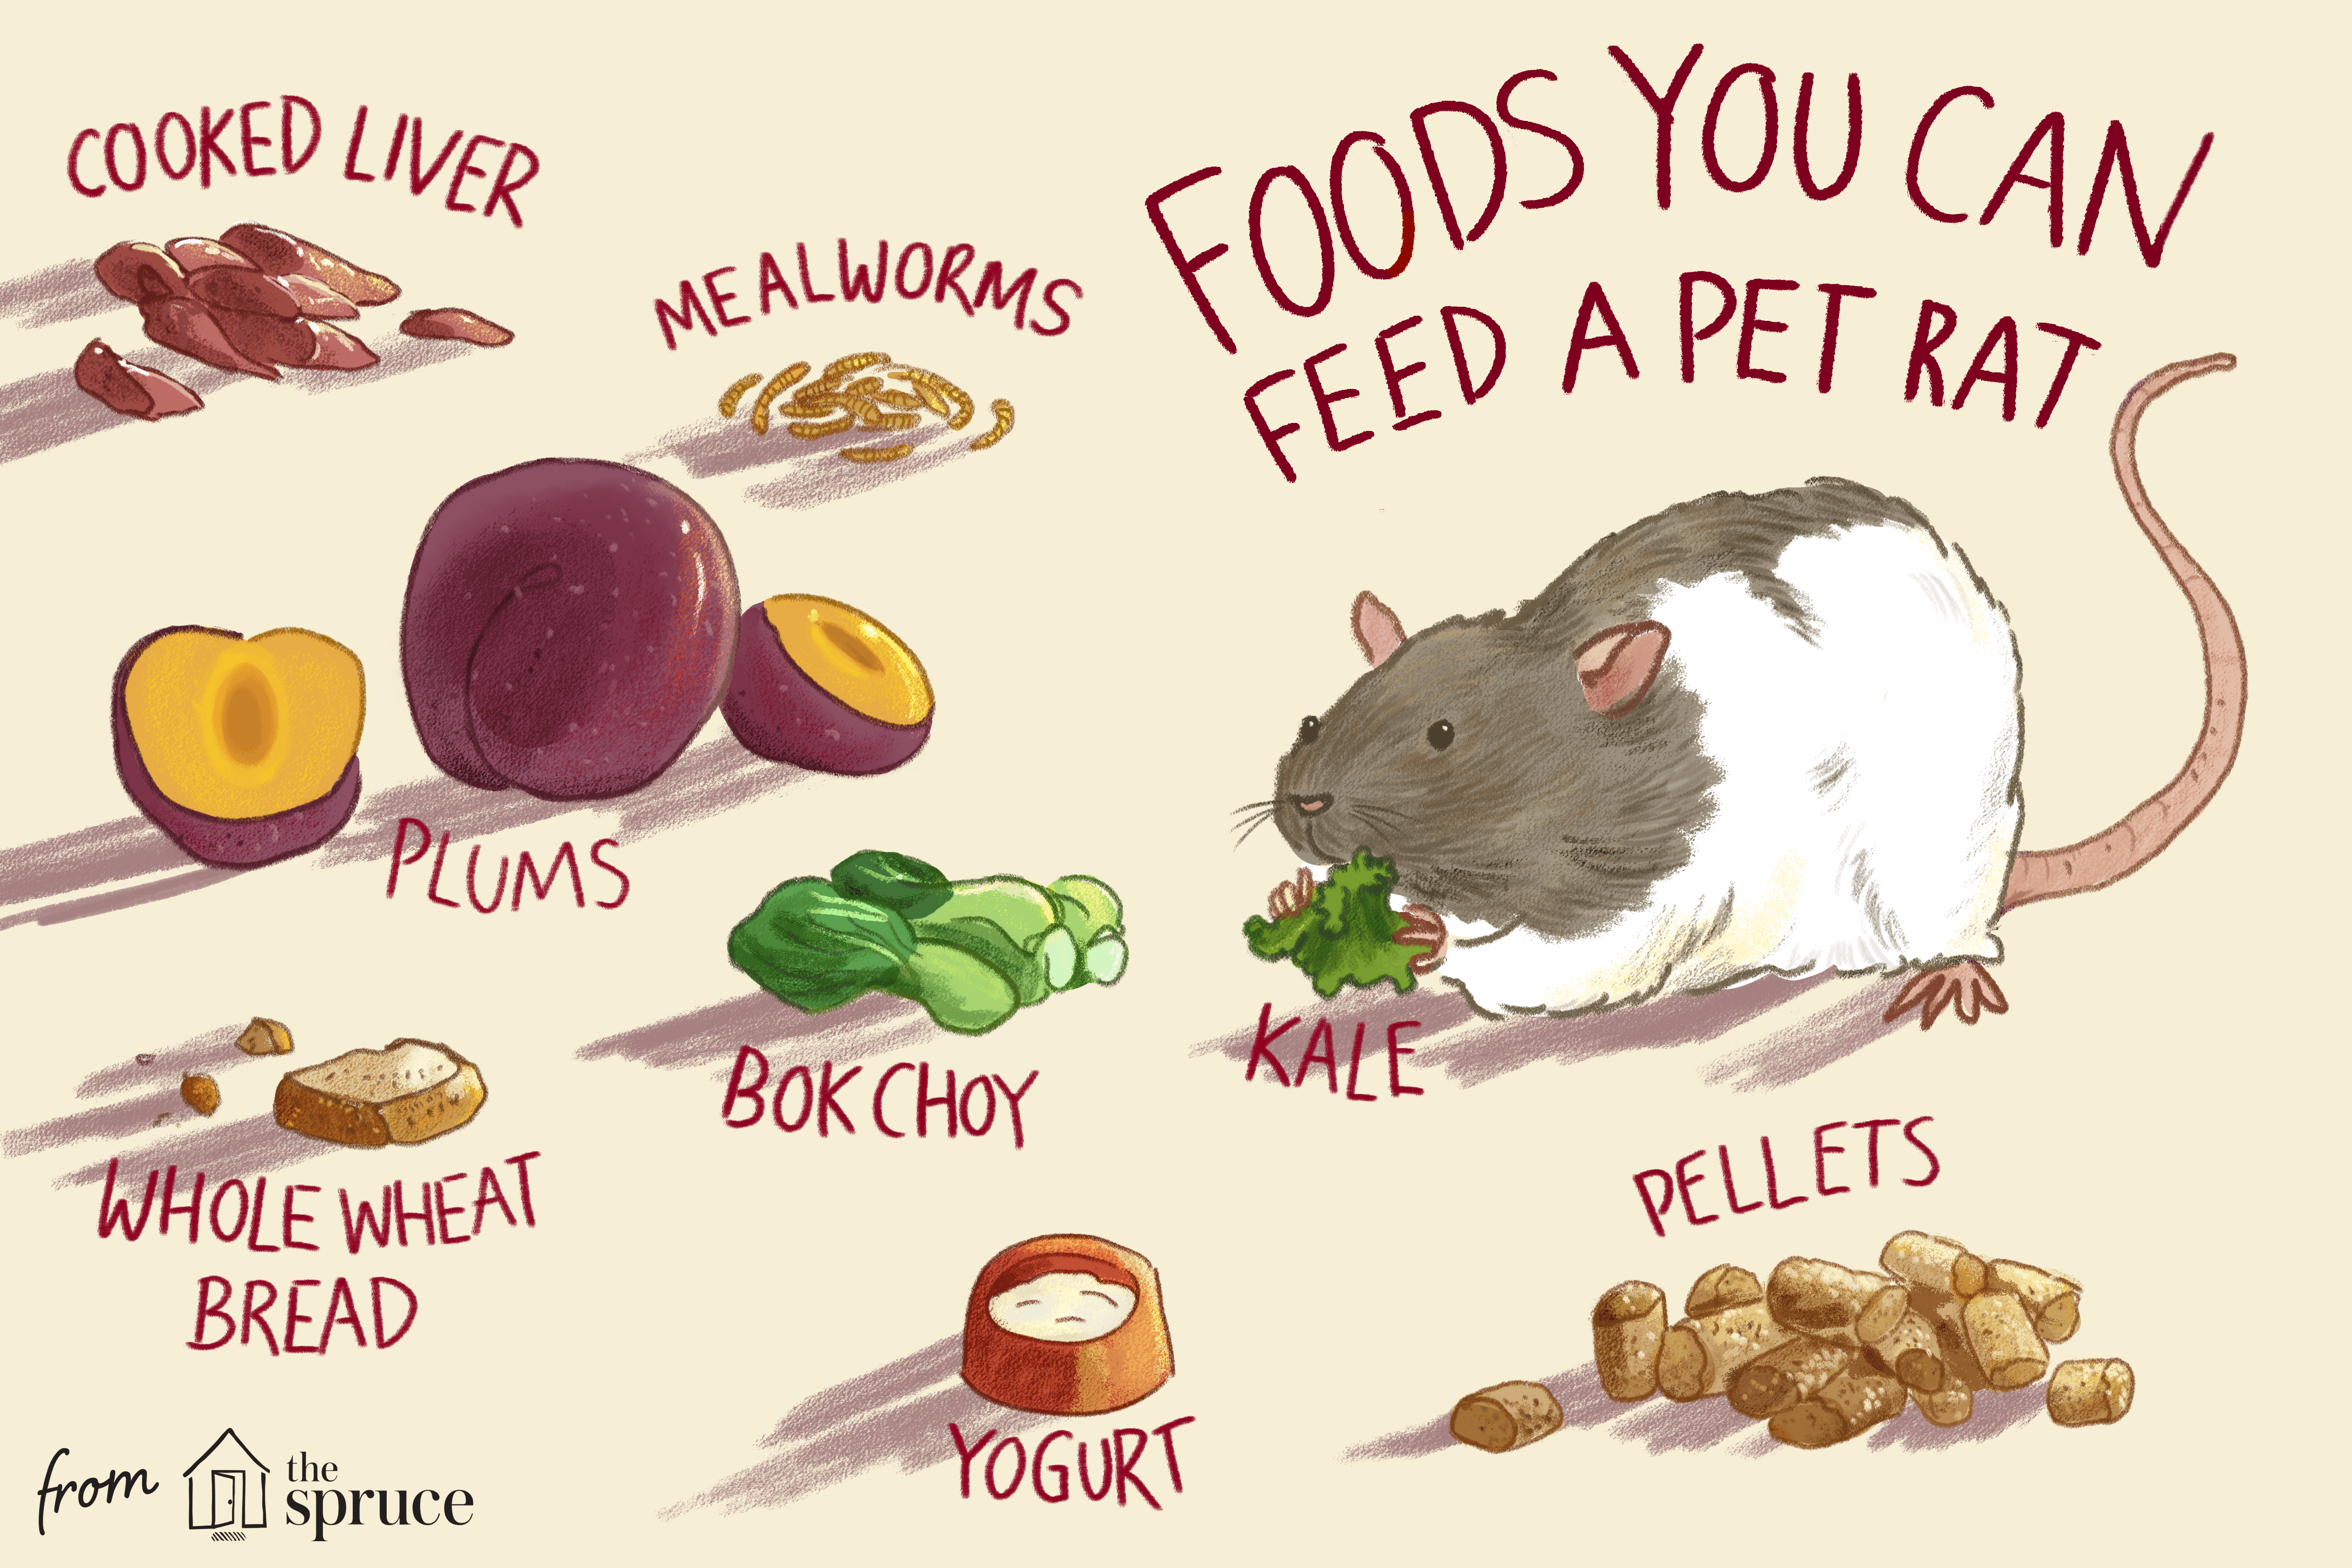 foods you can feed a pet rat